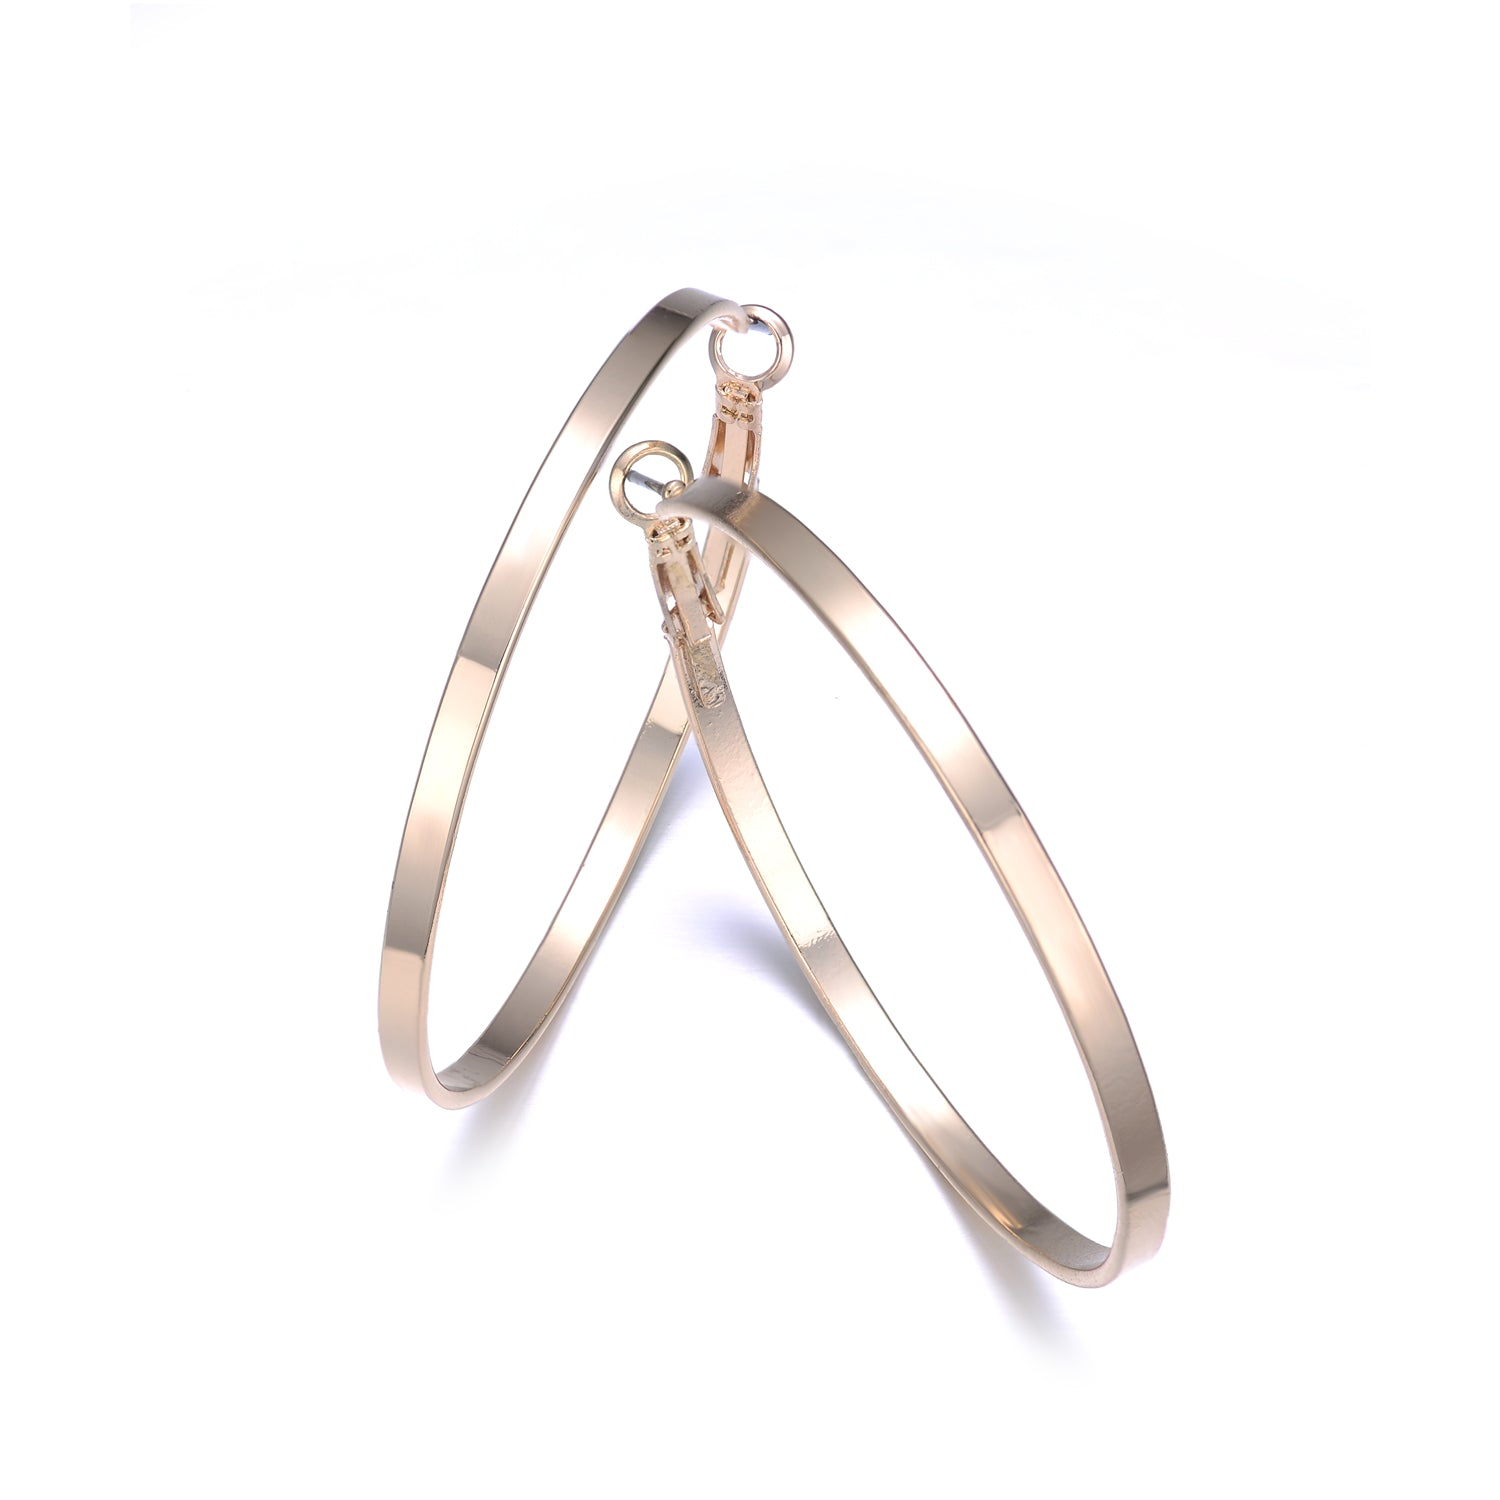 Hoop Earrings Gold 50mm By Jewels To Jet-Jewels to Jet-Magnetic Clasp Jewelry